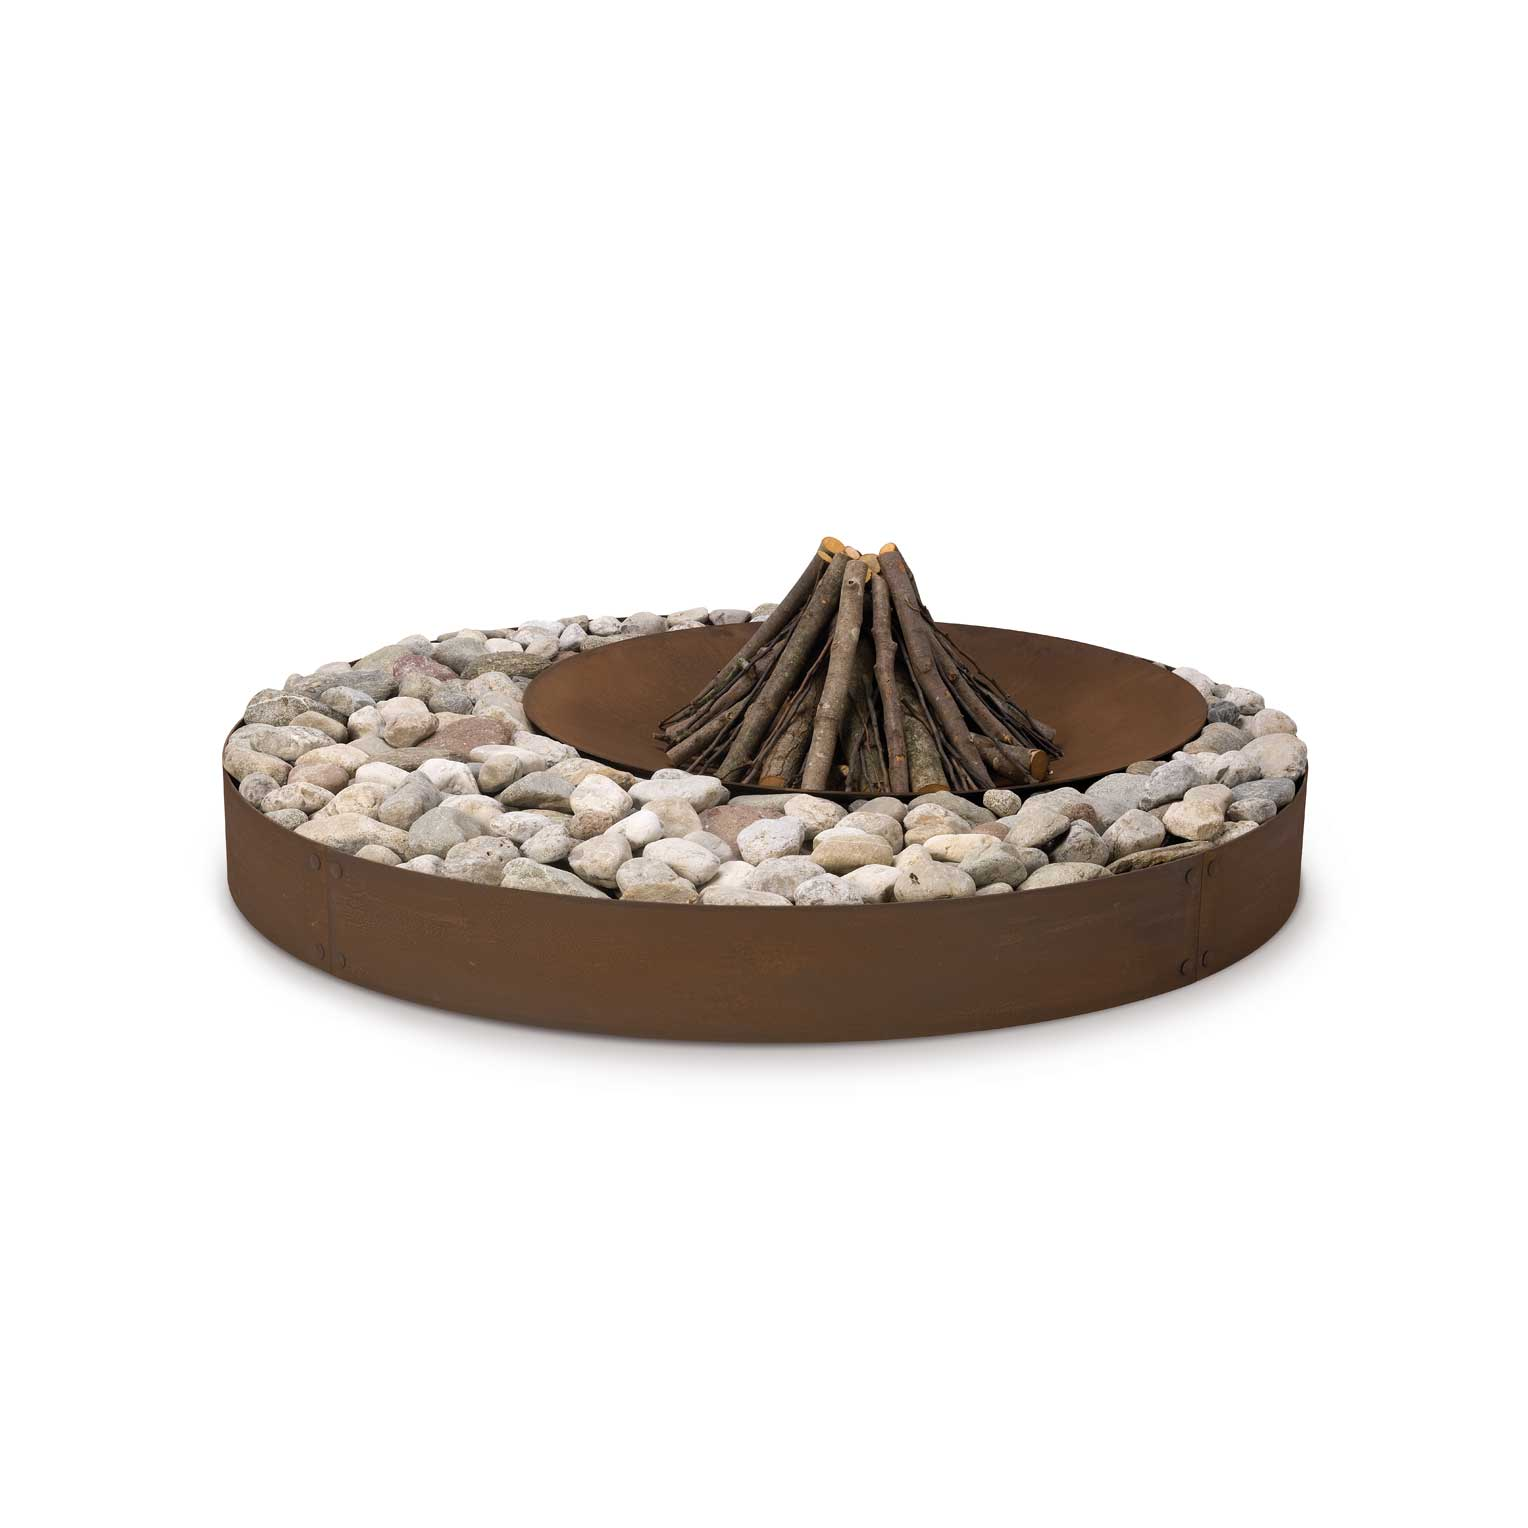 Outdoor Firepit Zen by AK47